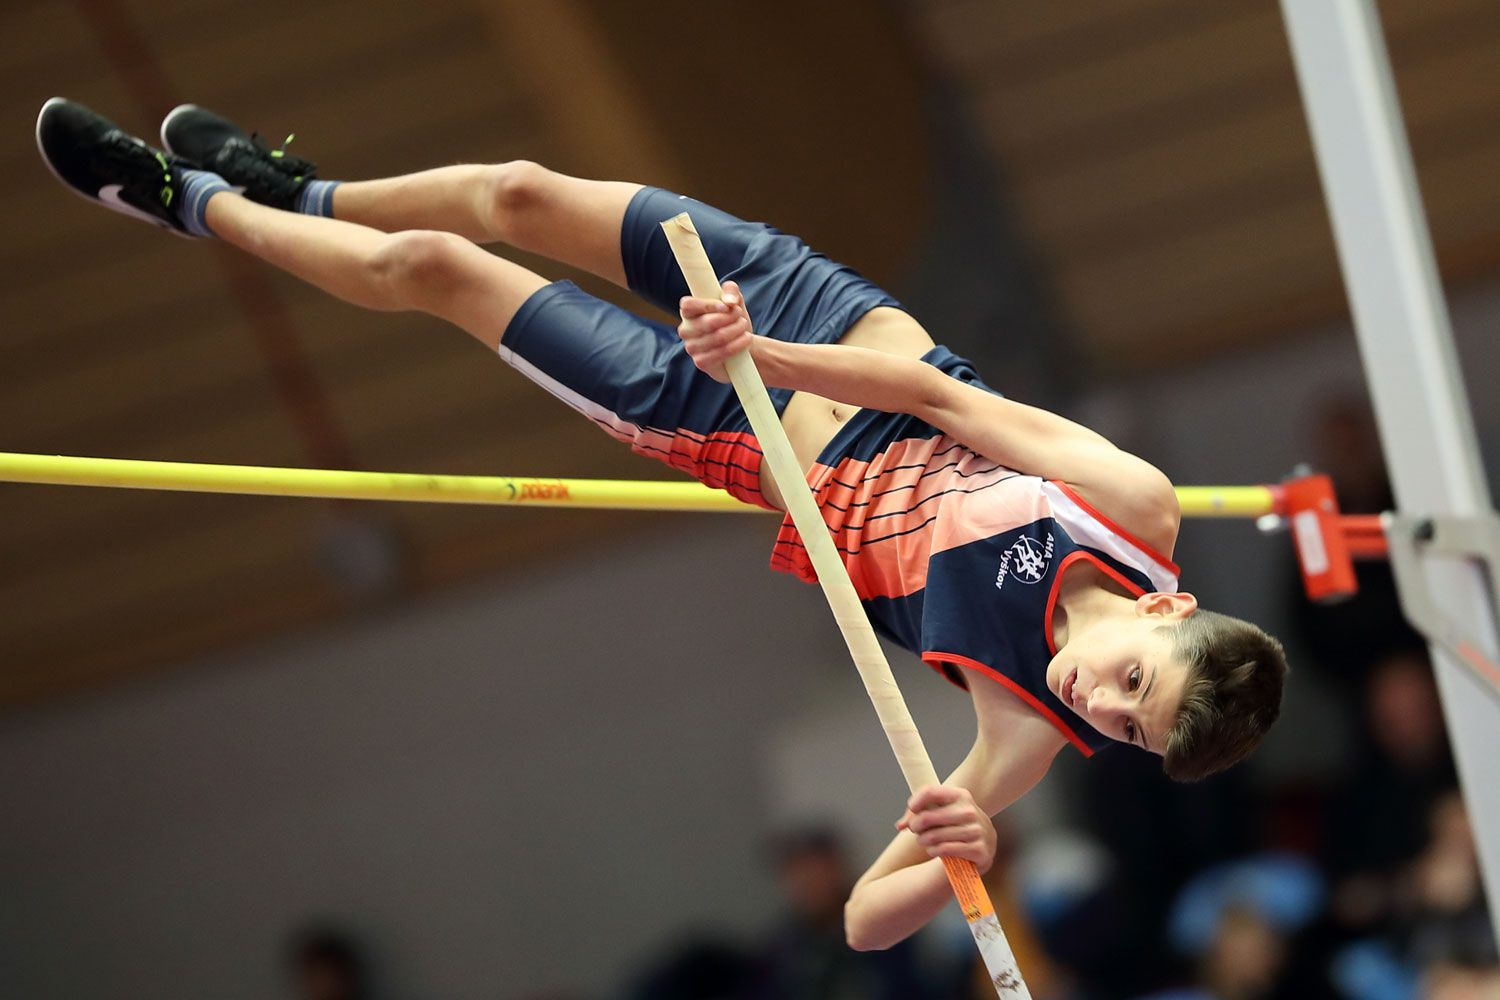 Ostrava Indoor CZ Championship U16 Saturday 10